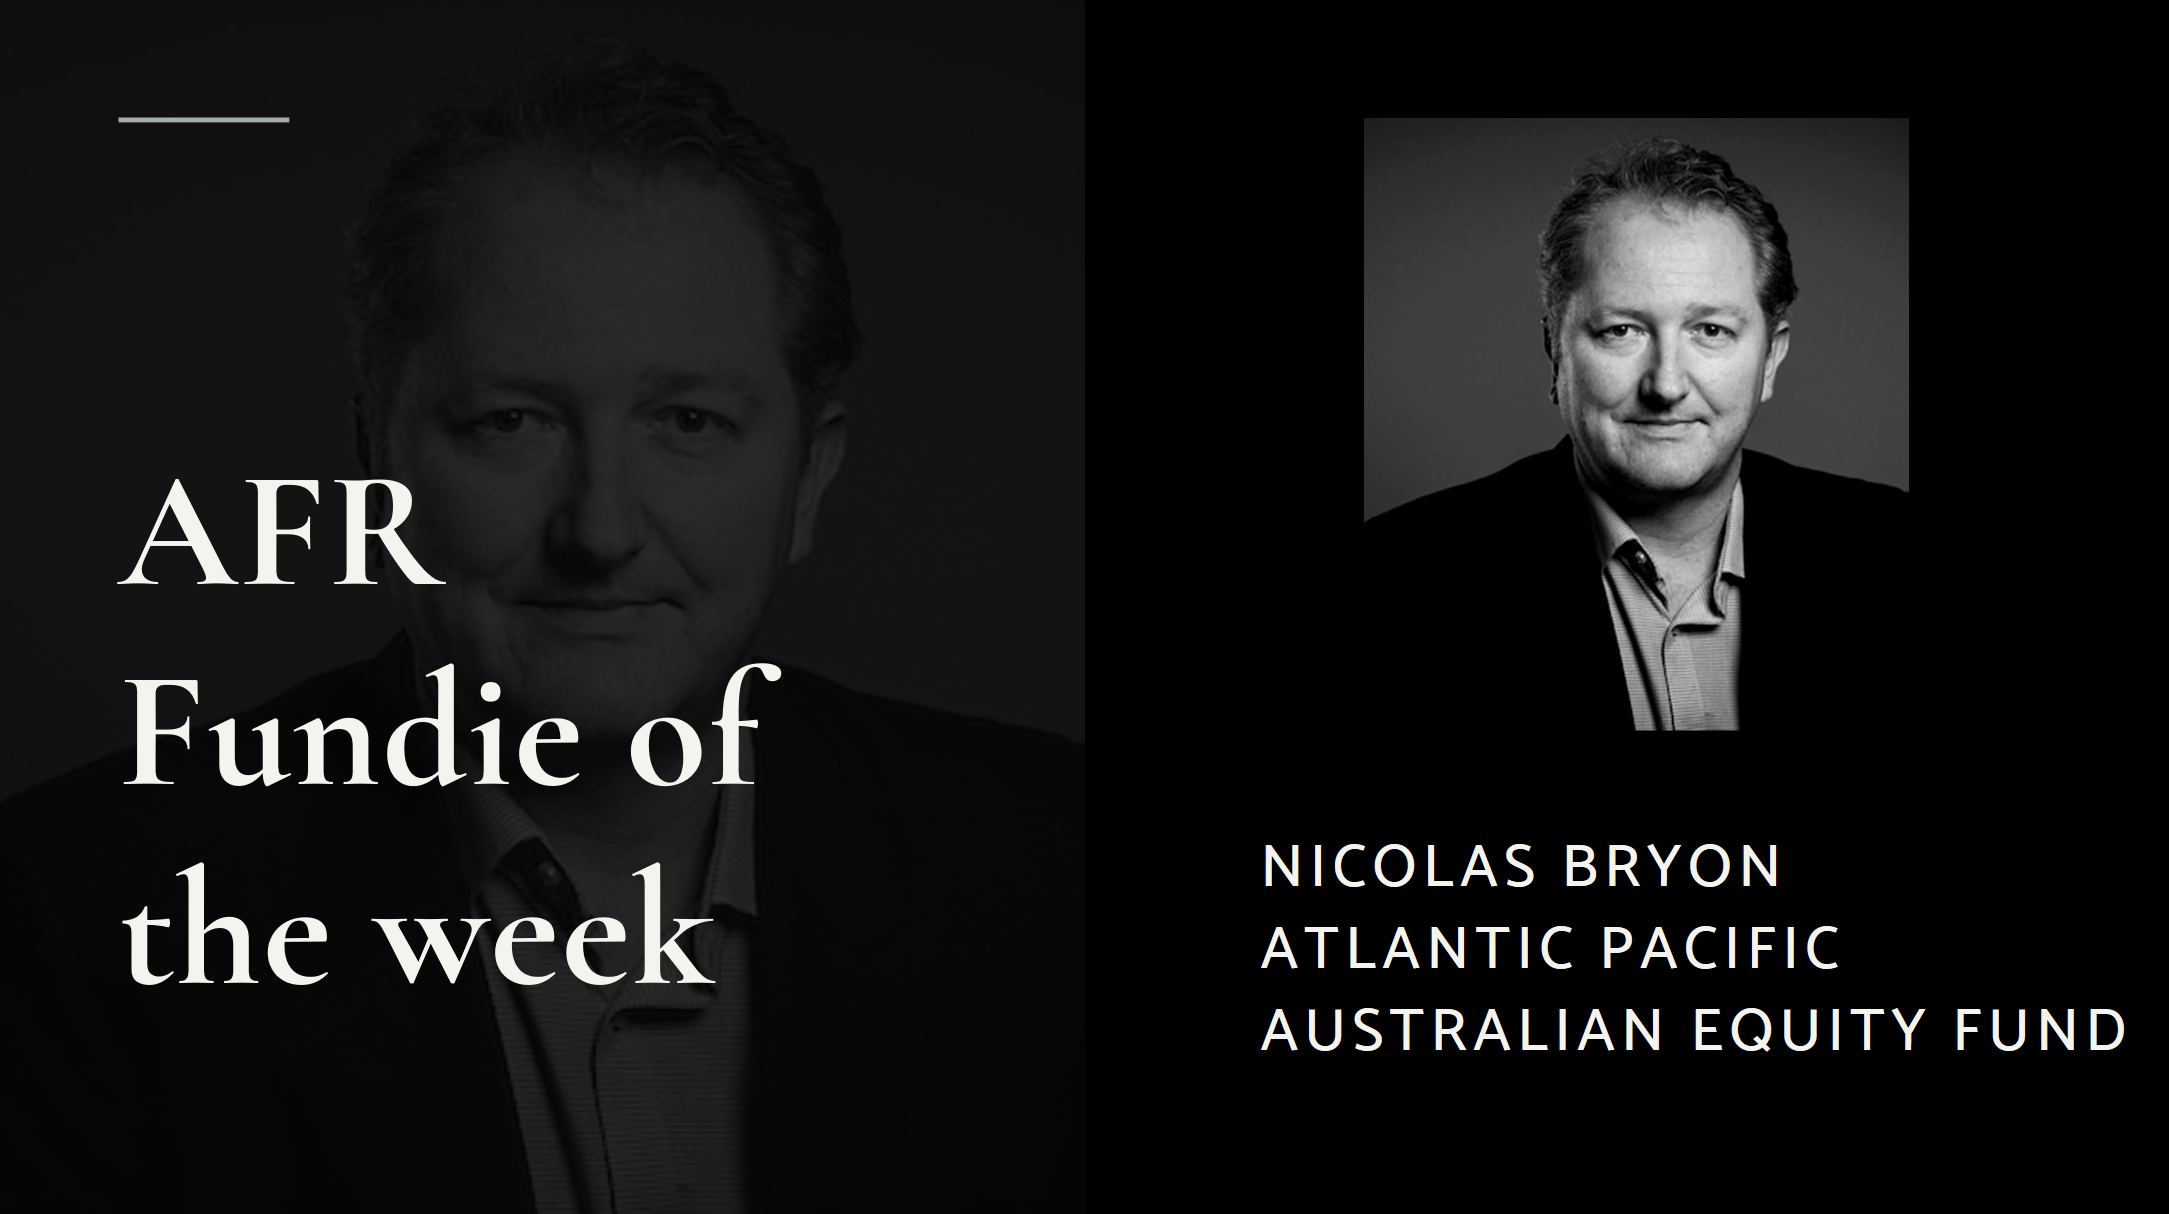 Nicola Bryon - AFR Fundie of the week 2020-04-27_18-33-47